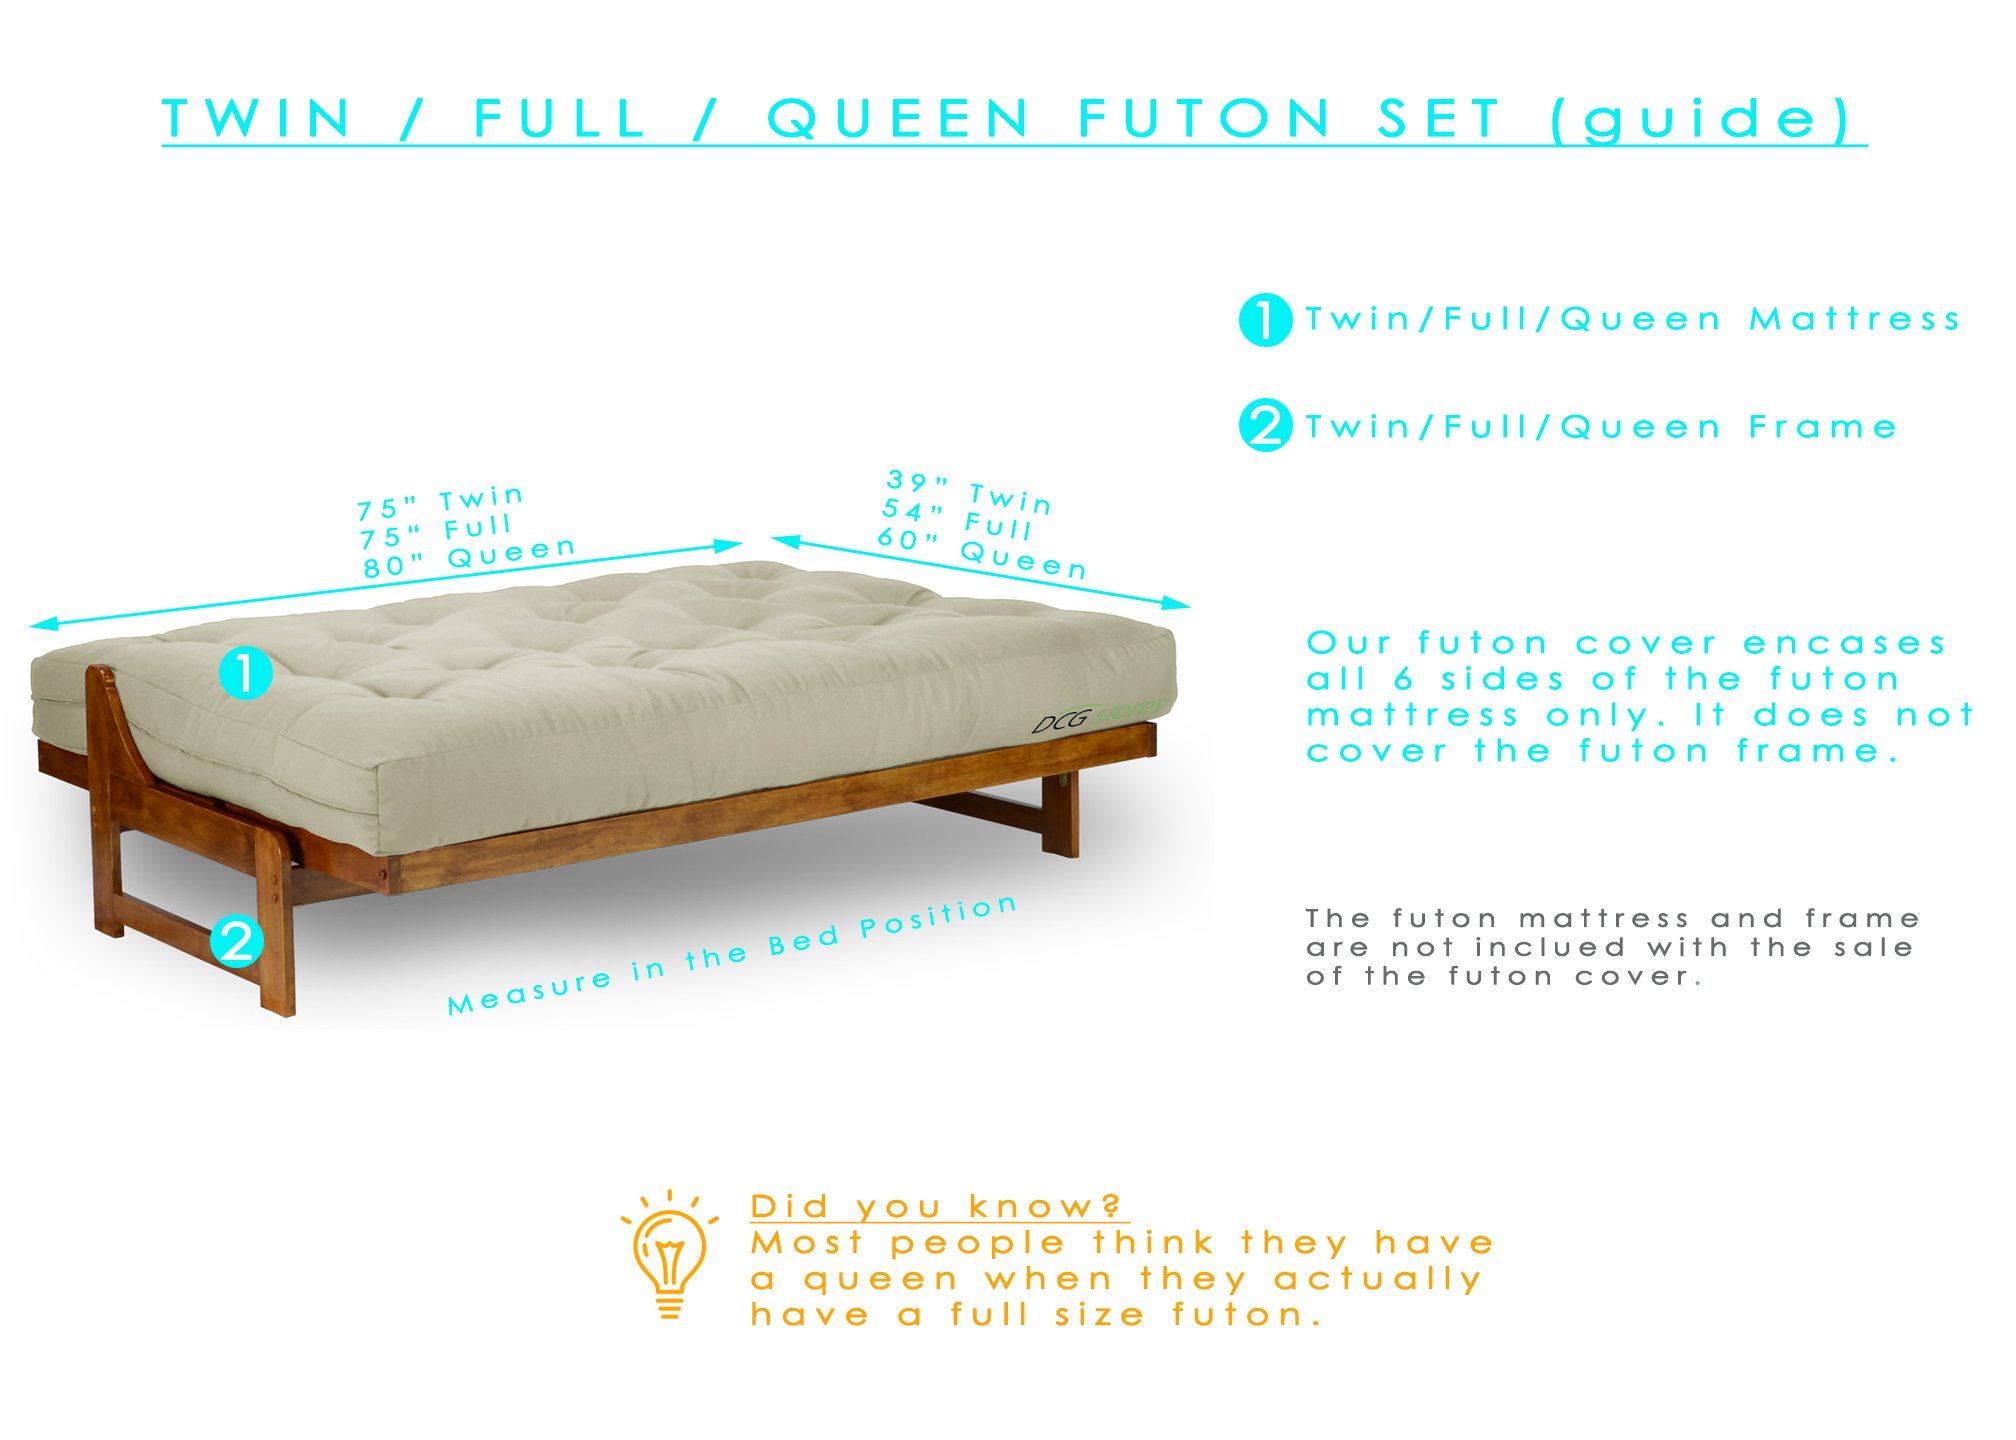 Palavas Twin Size Futon Cover, 39 Inch x 75 Inch - Proudly Made in USA by Nirvana Futons (Image #2)